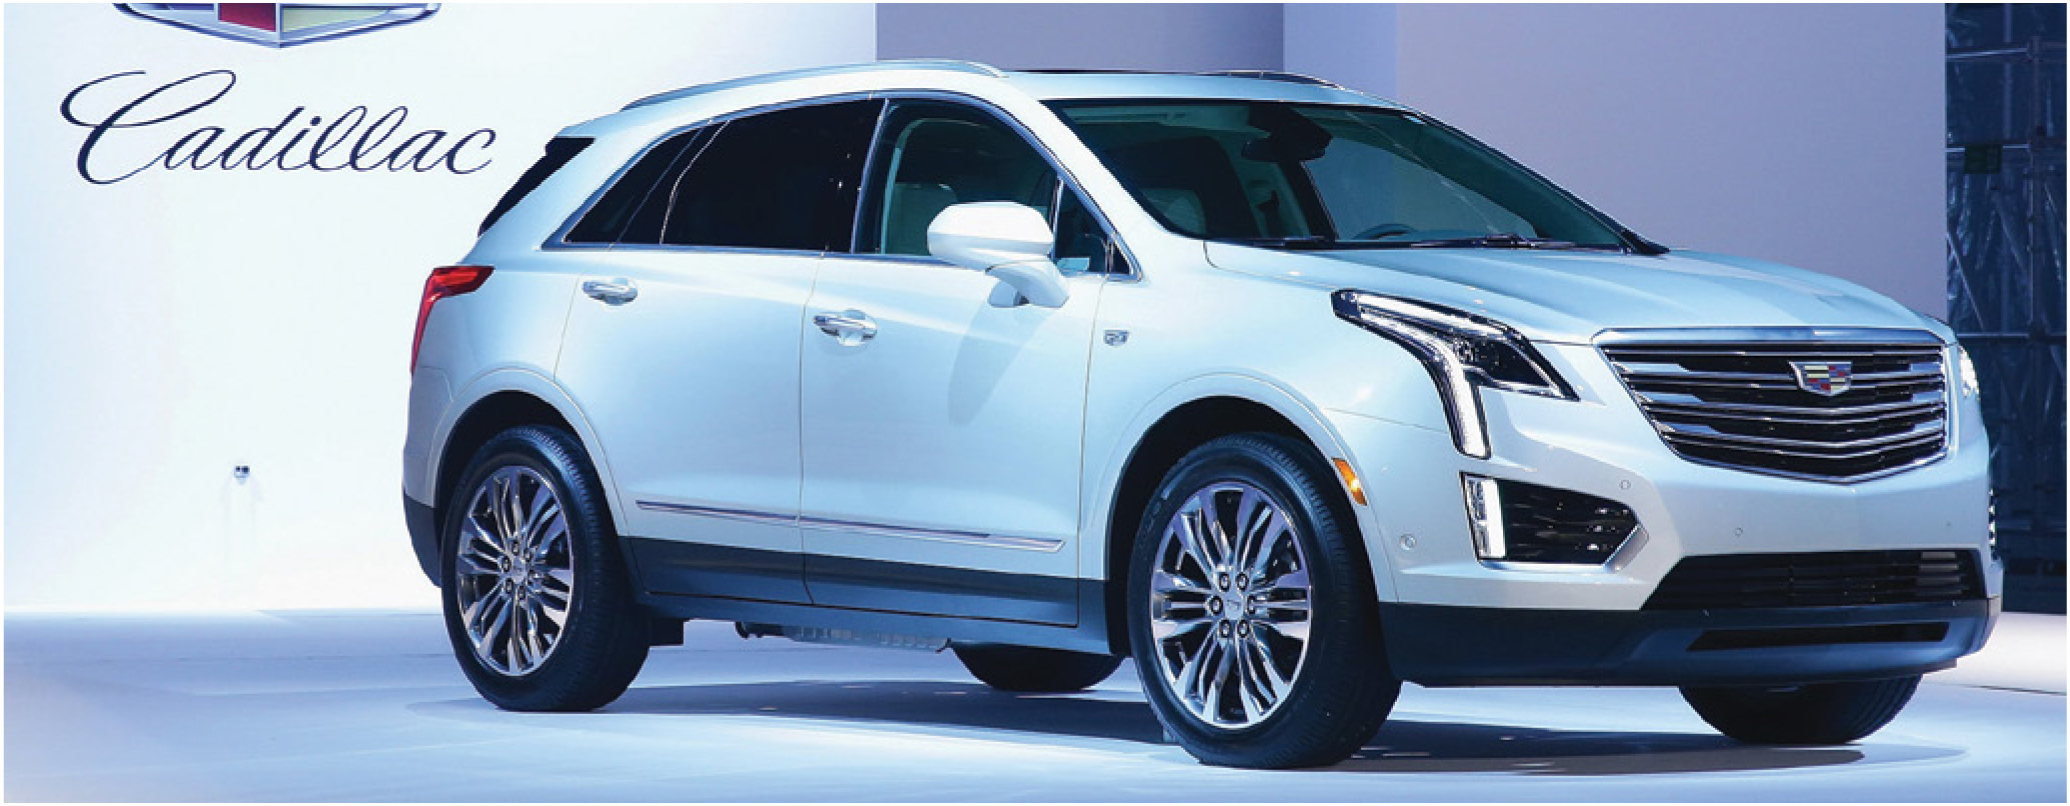 Underpinned by GM's all-new architecture for midsized utilities, the 2017 Cadillac XT5 will compete with the Audi Q5, Lexus RX, and other premium crossovers.